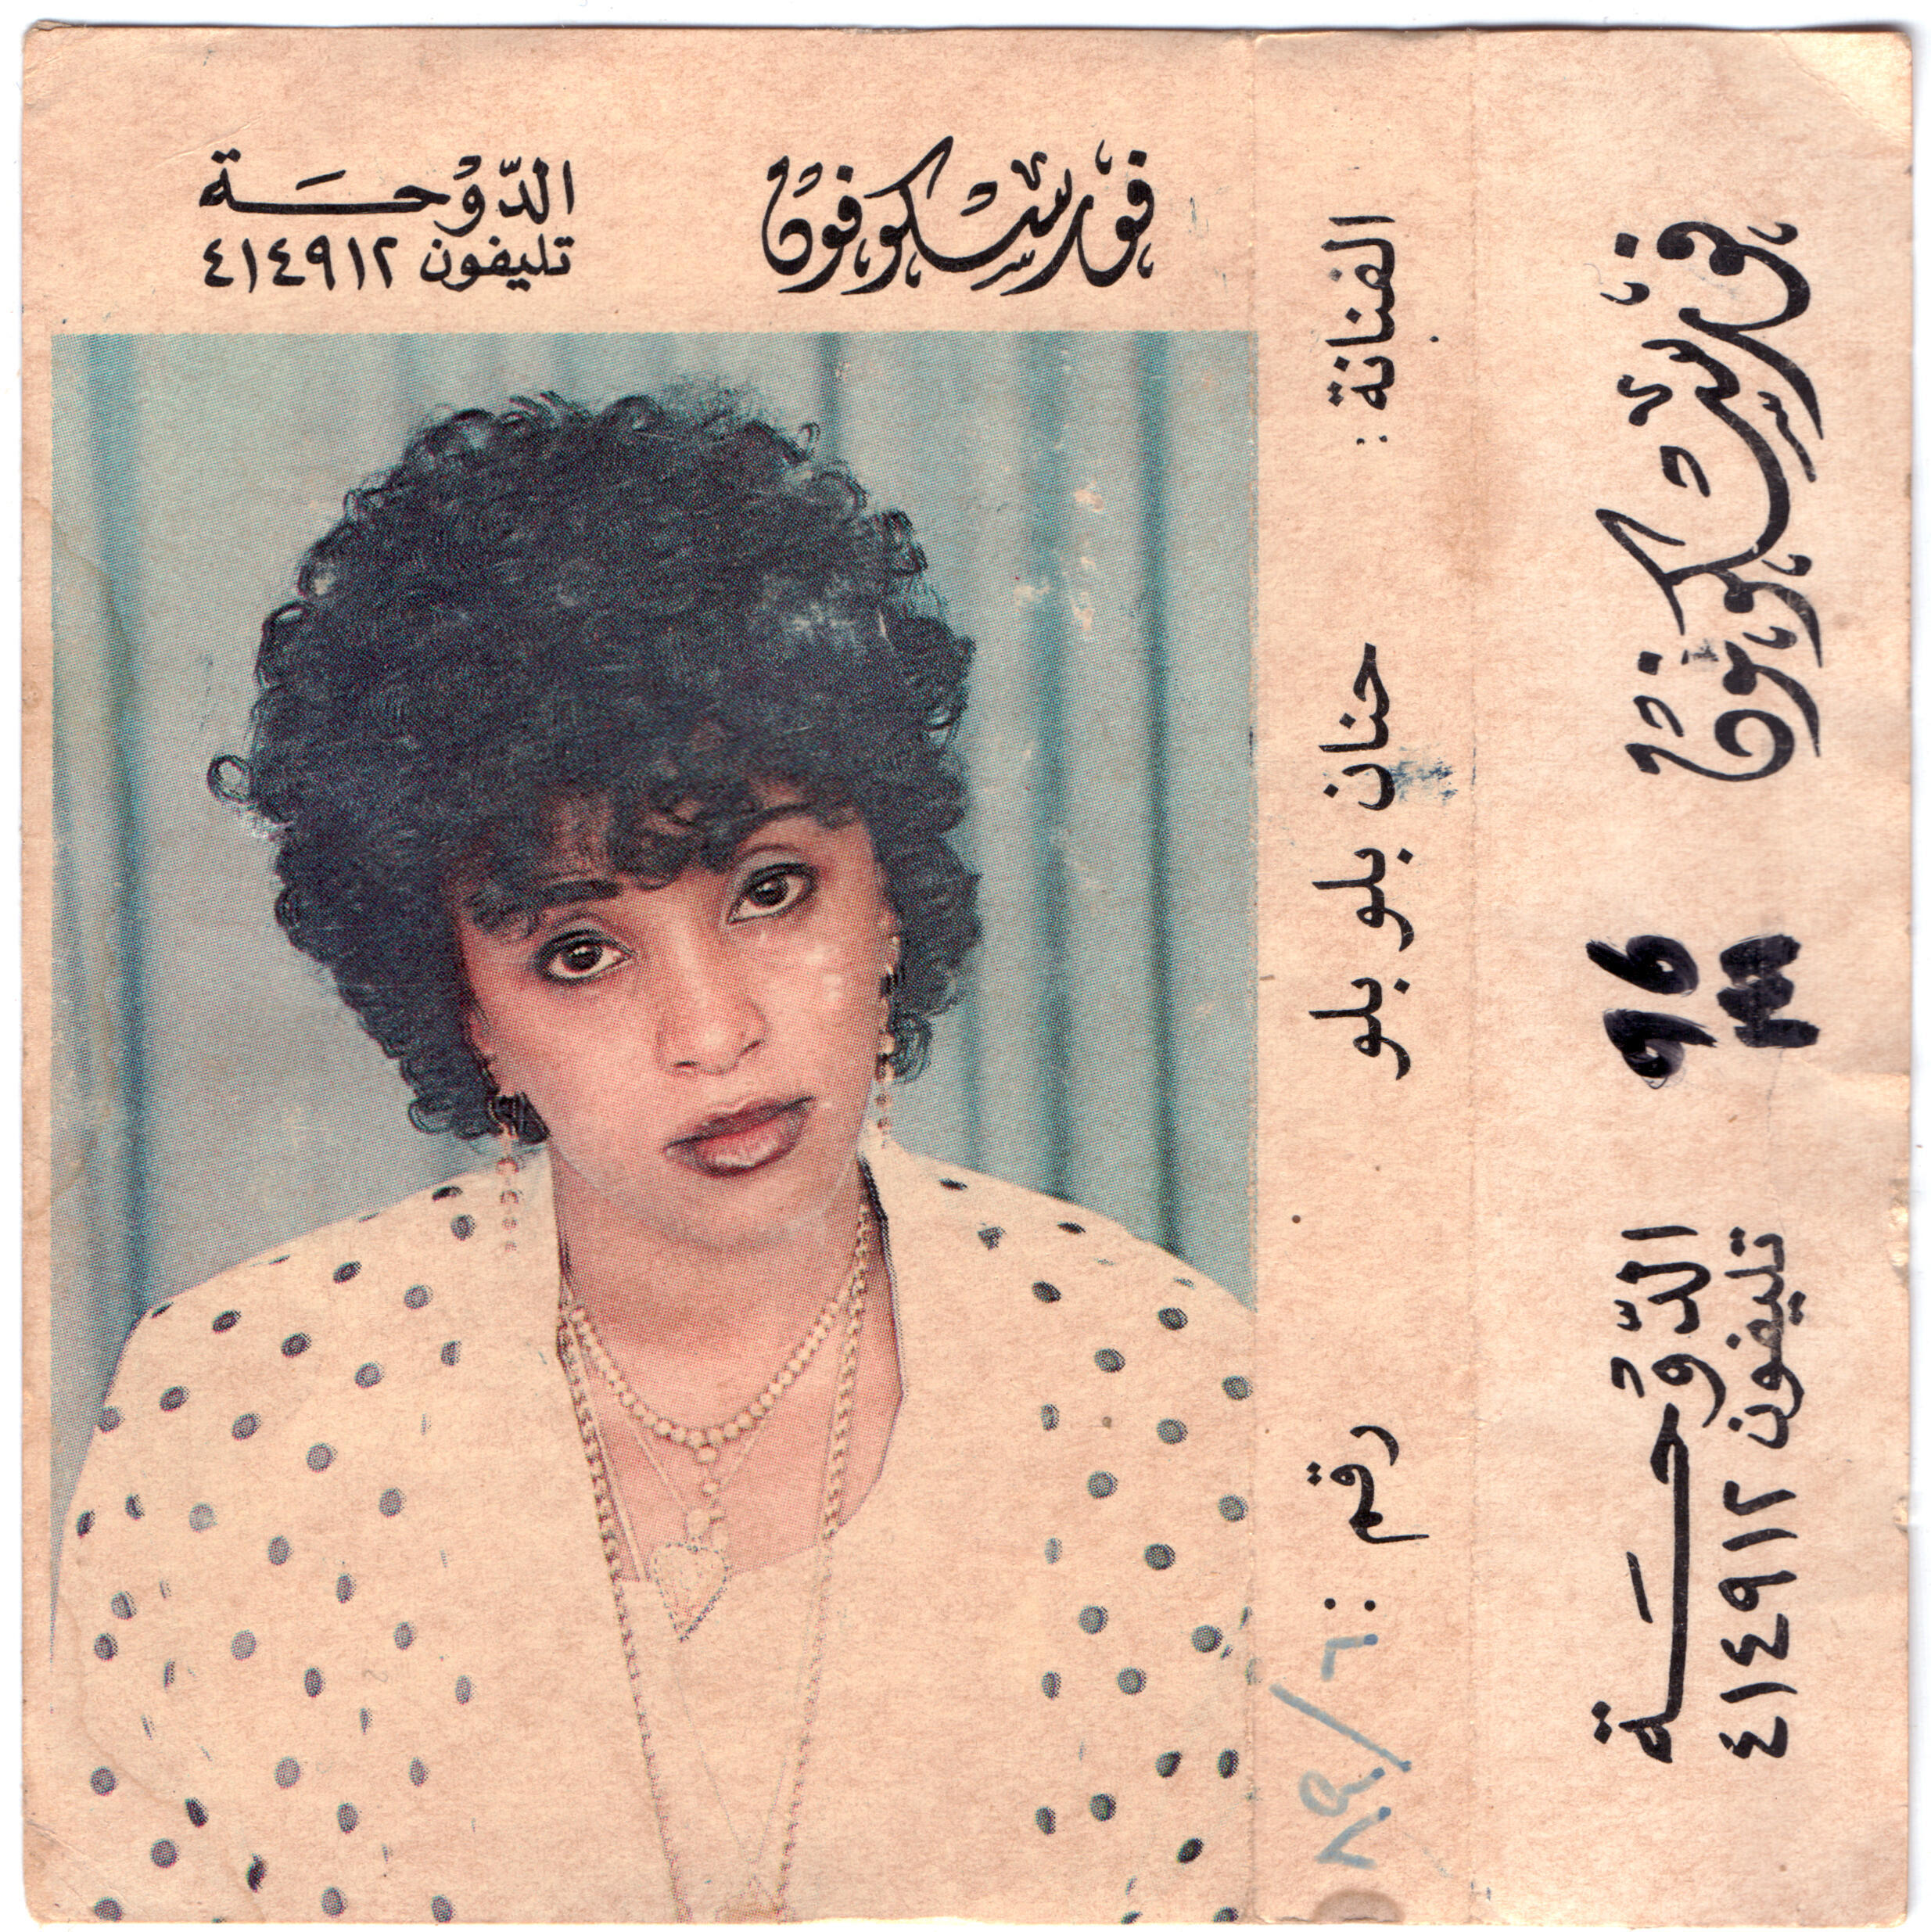 Hanan Bulu Bulu, one of Sudan's most popular young singers, ended up in exile in Cairo